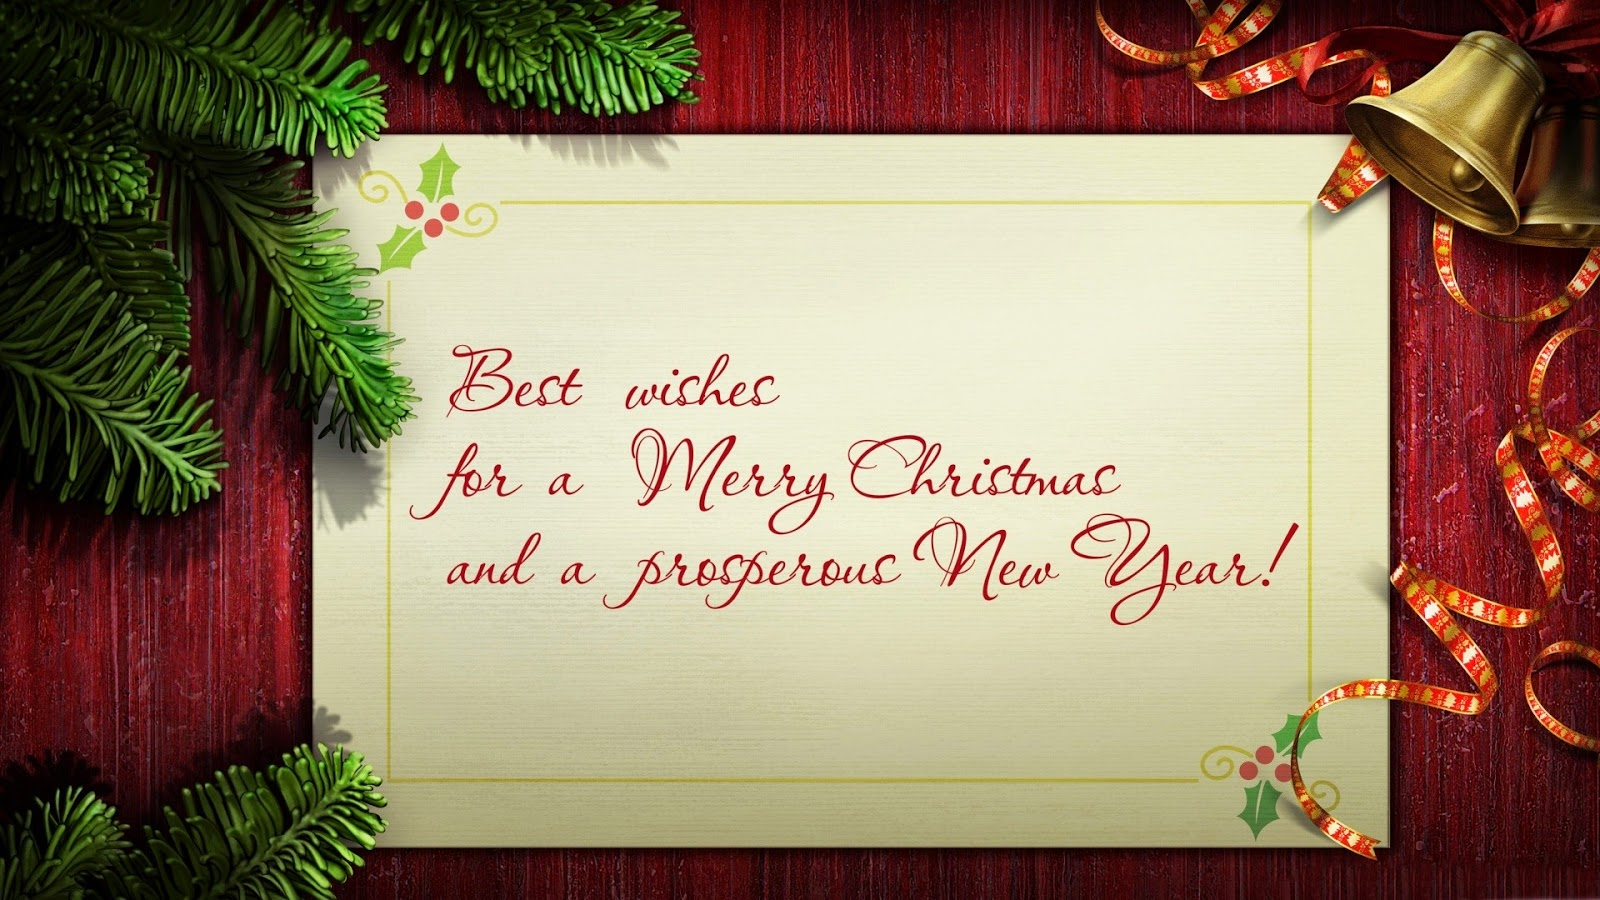 i wish merry christmas to you and your family